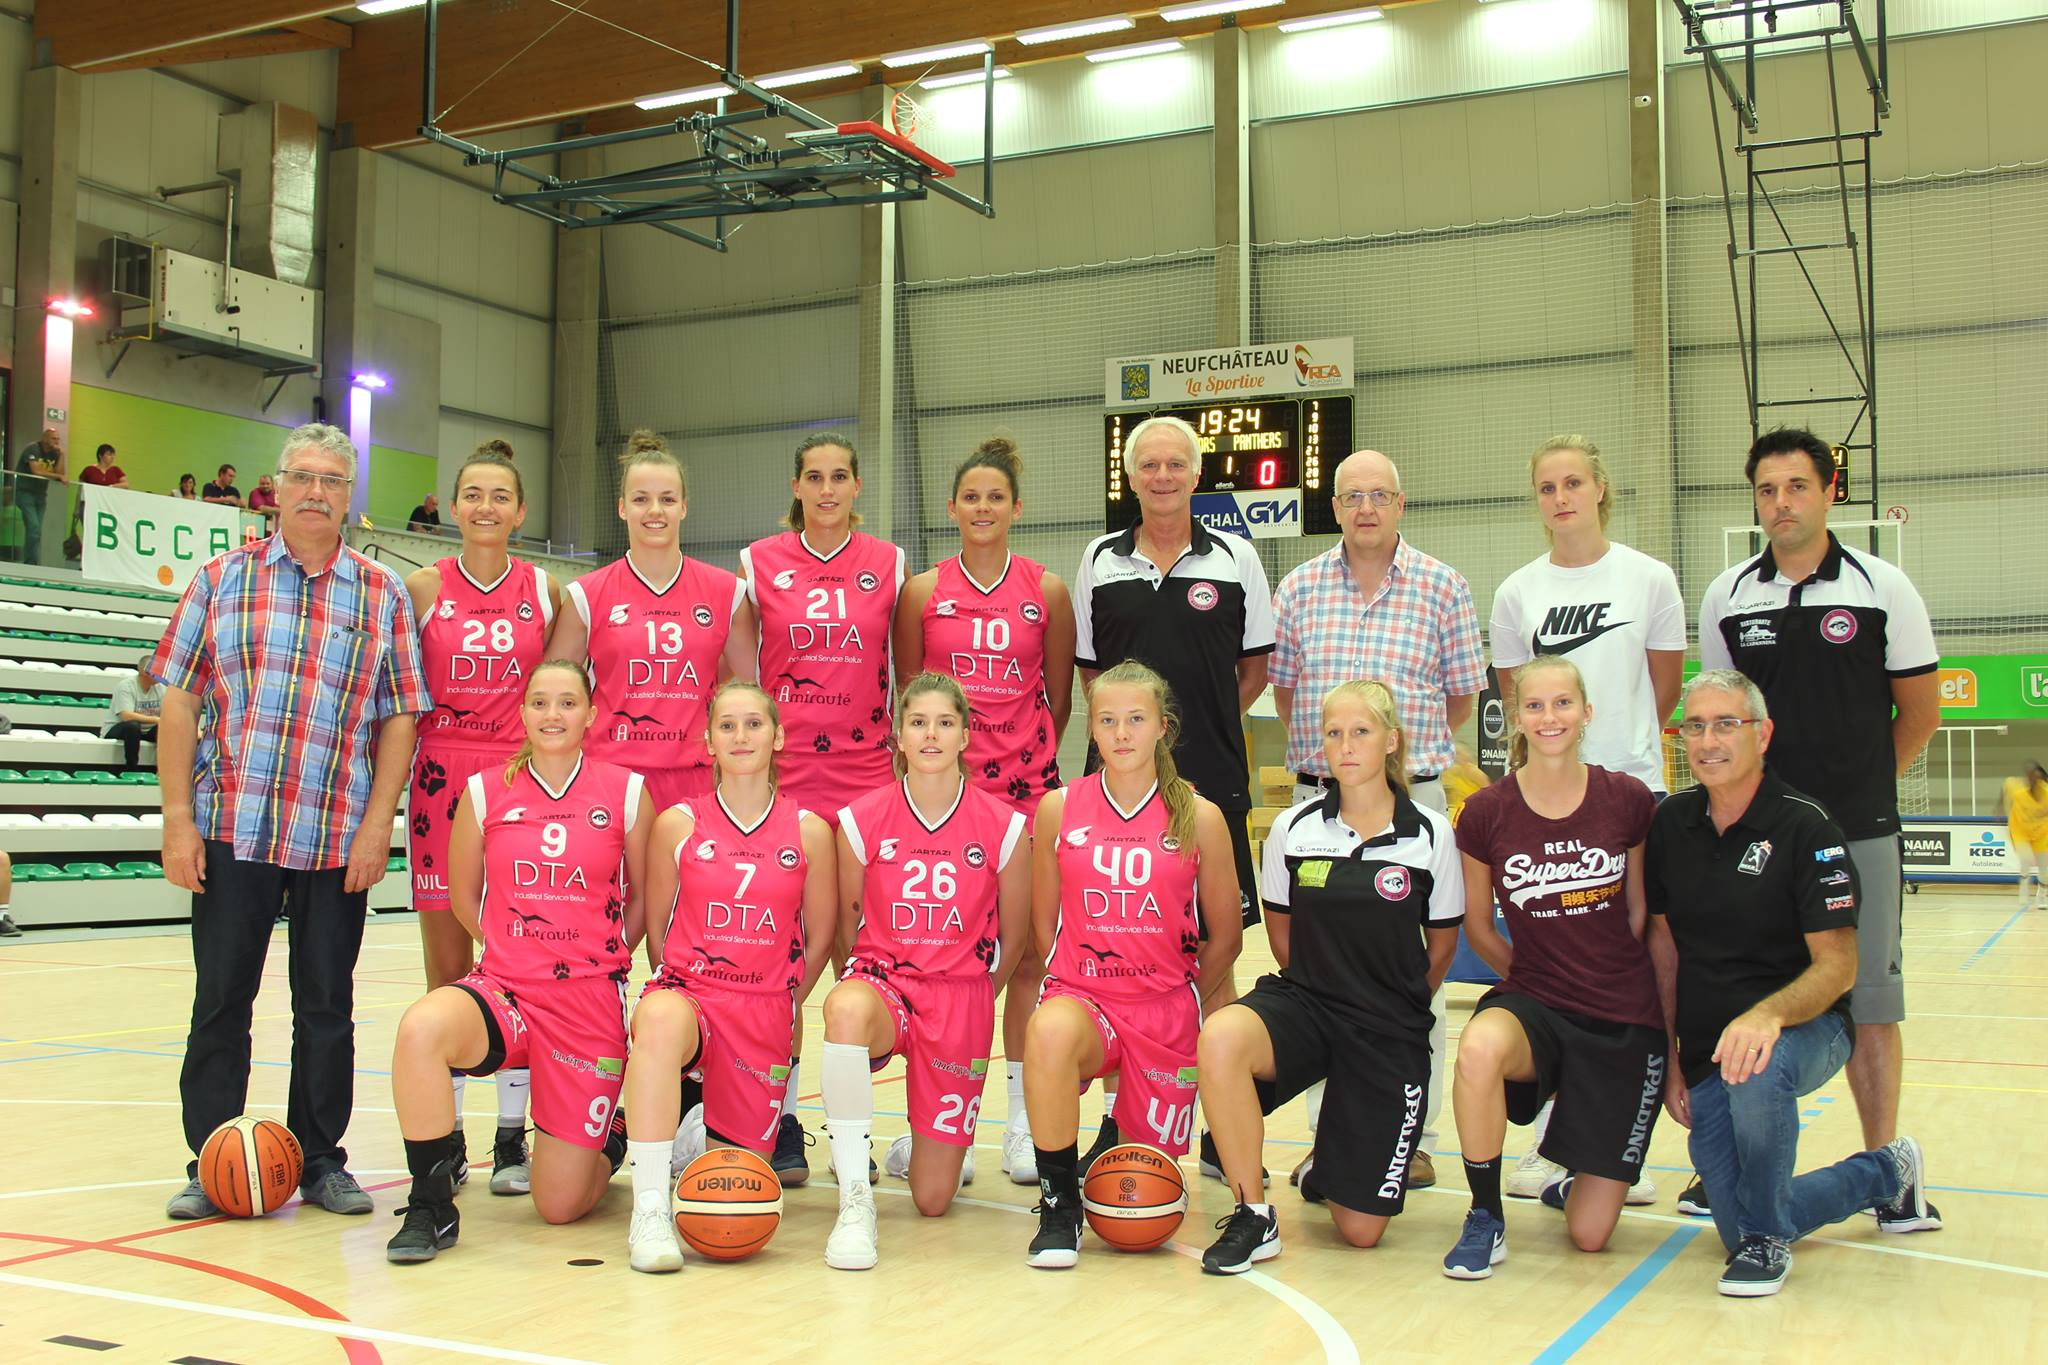 Liège Panthers 2017/2018 (photo: liegepanthers.be)